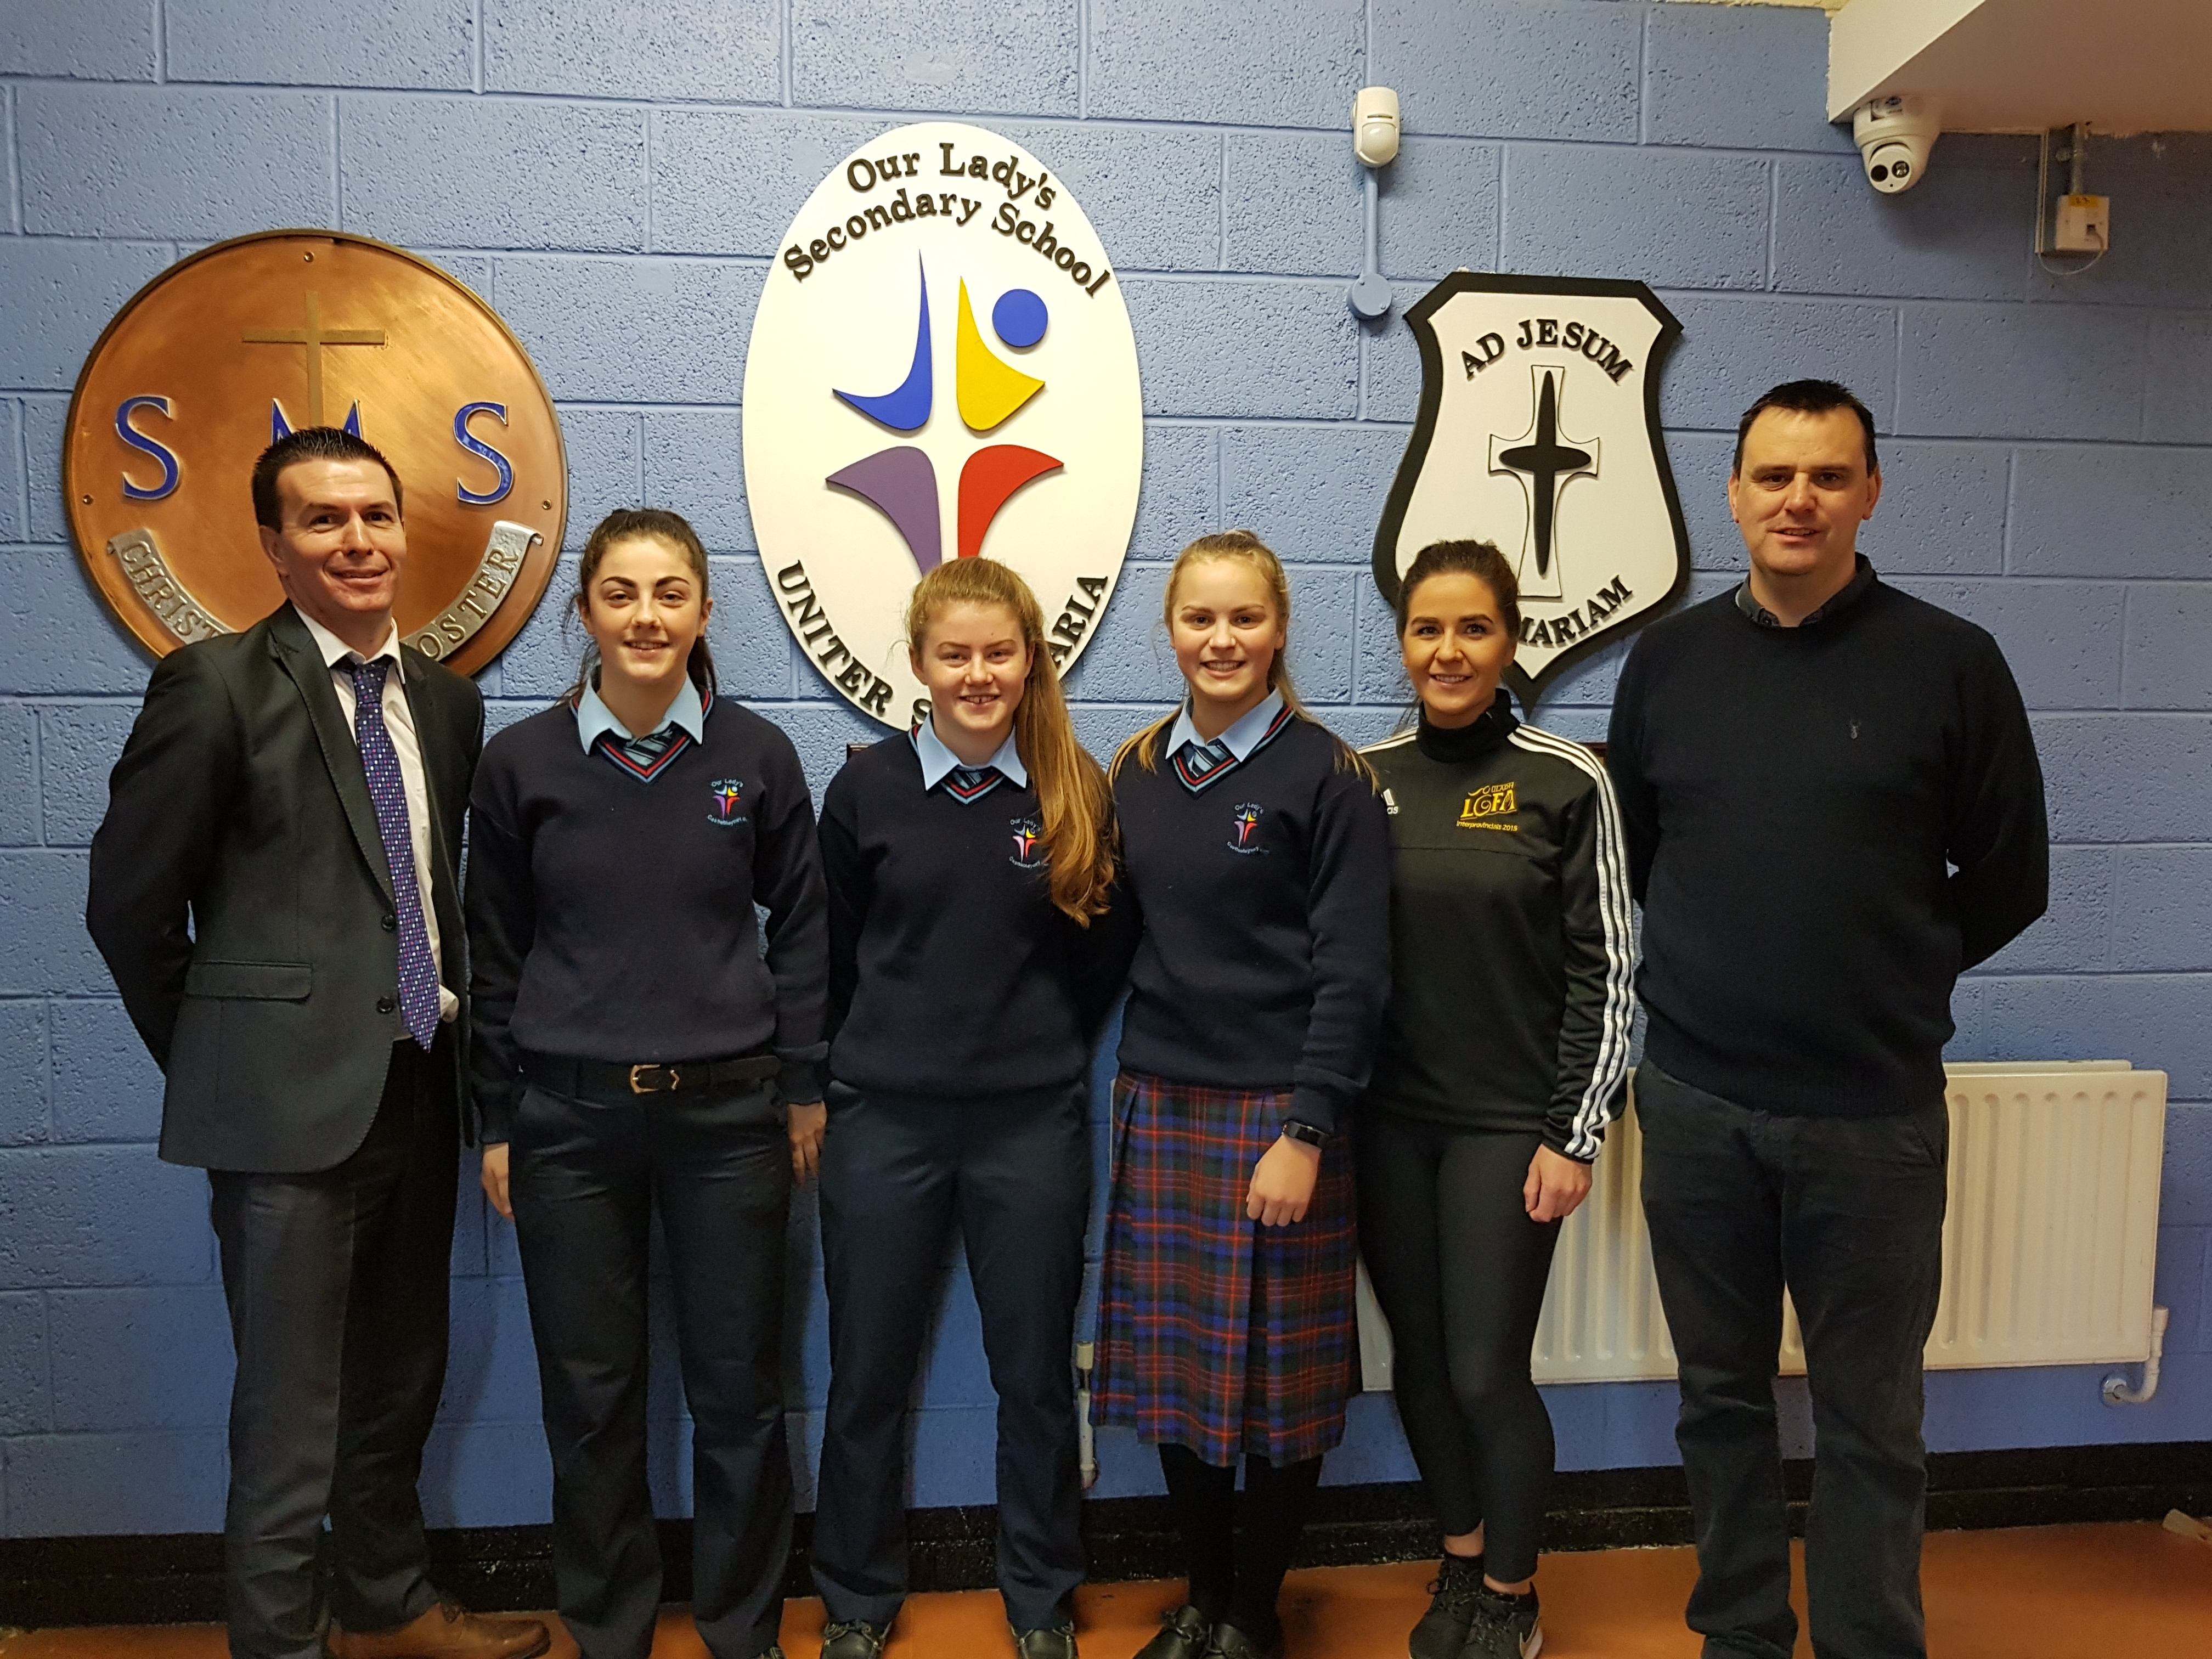 Three more All Star Awards for Our Lady's Secondary School, Castleblayney